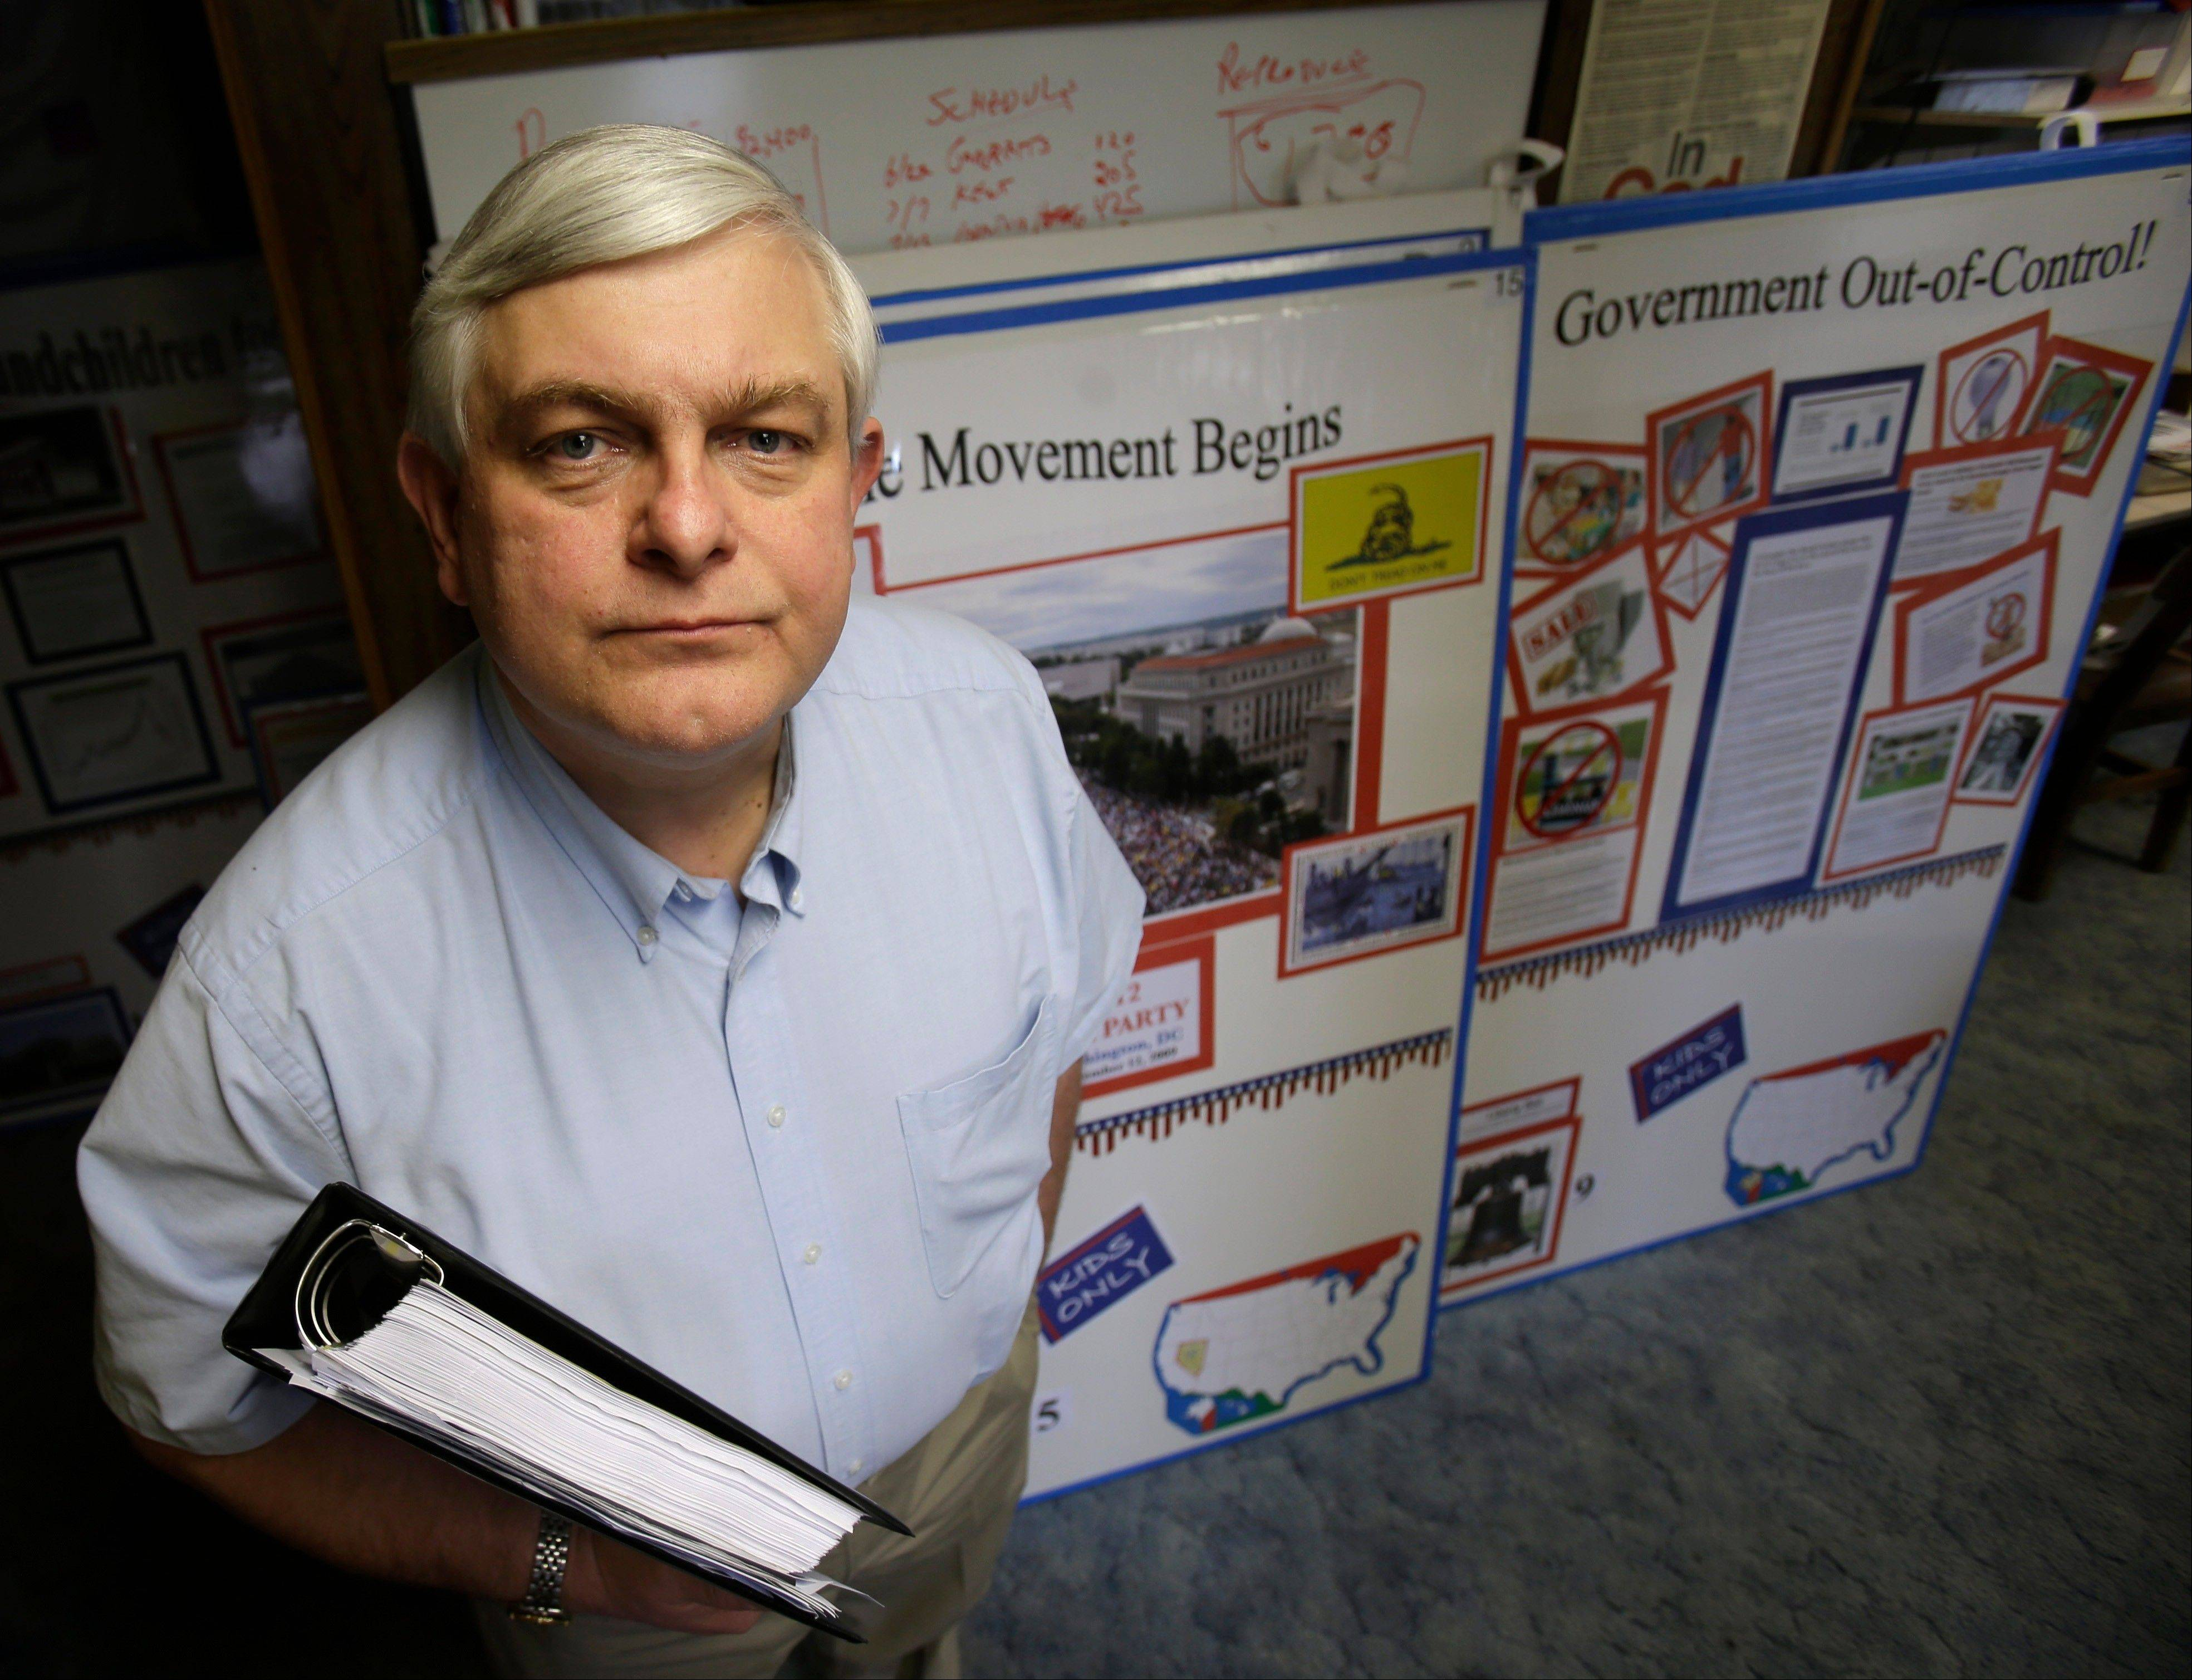 Tom Zawistowki, founder of the nonprofit Ohio Liberty Coalition, one of the region�s largest groups affiliated with the national tea party movement, poses with a binder of documents he gave to the IRS, in Kent, Ohio.